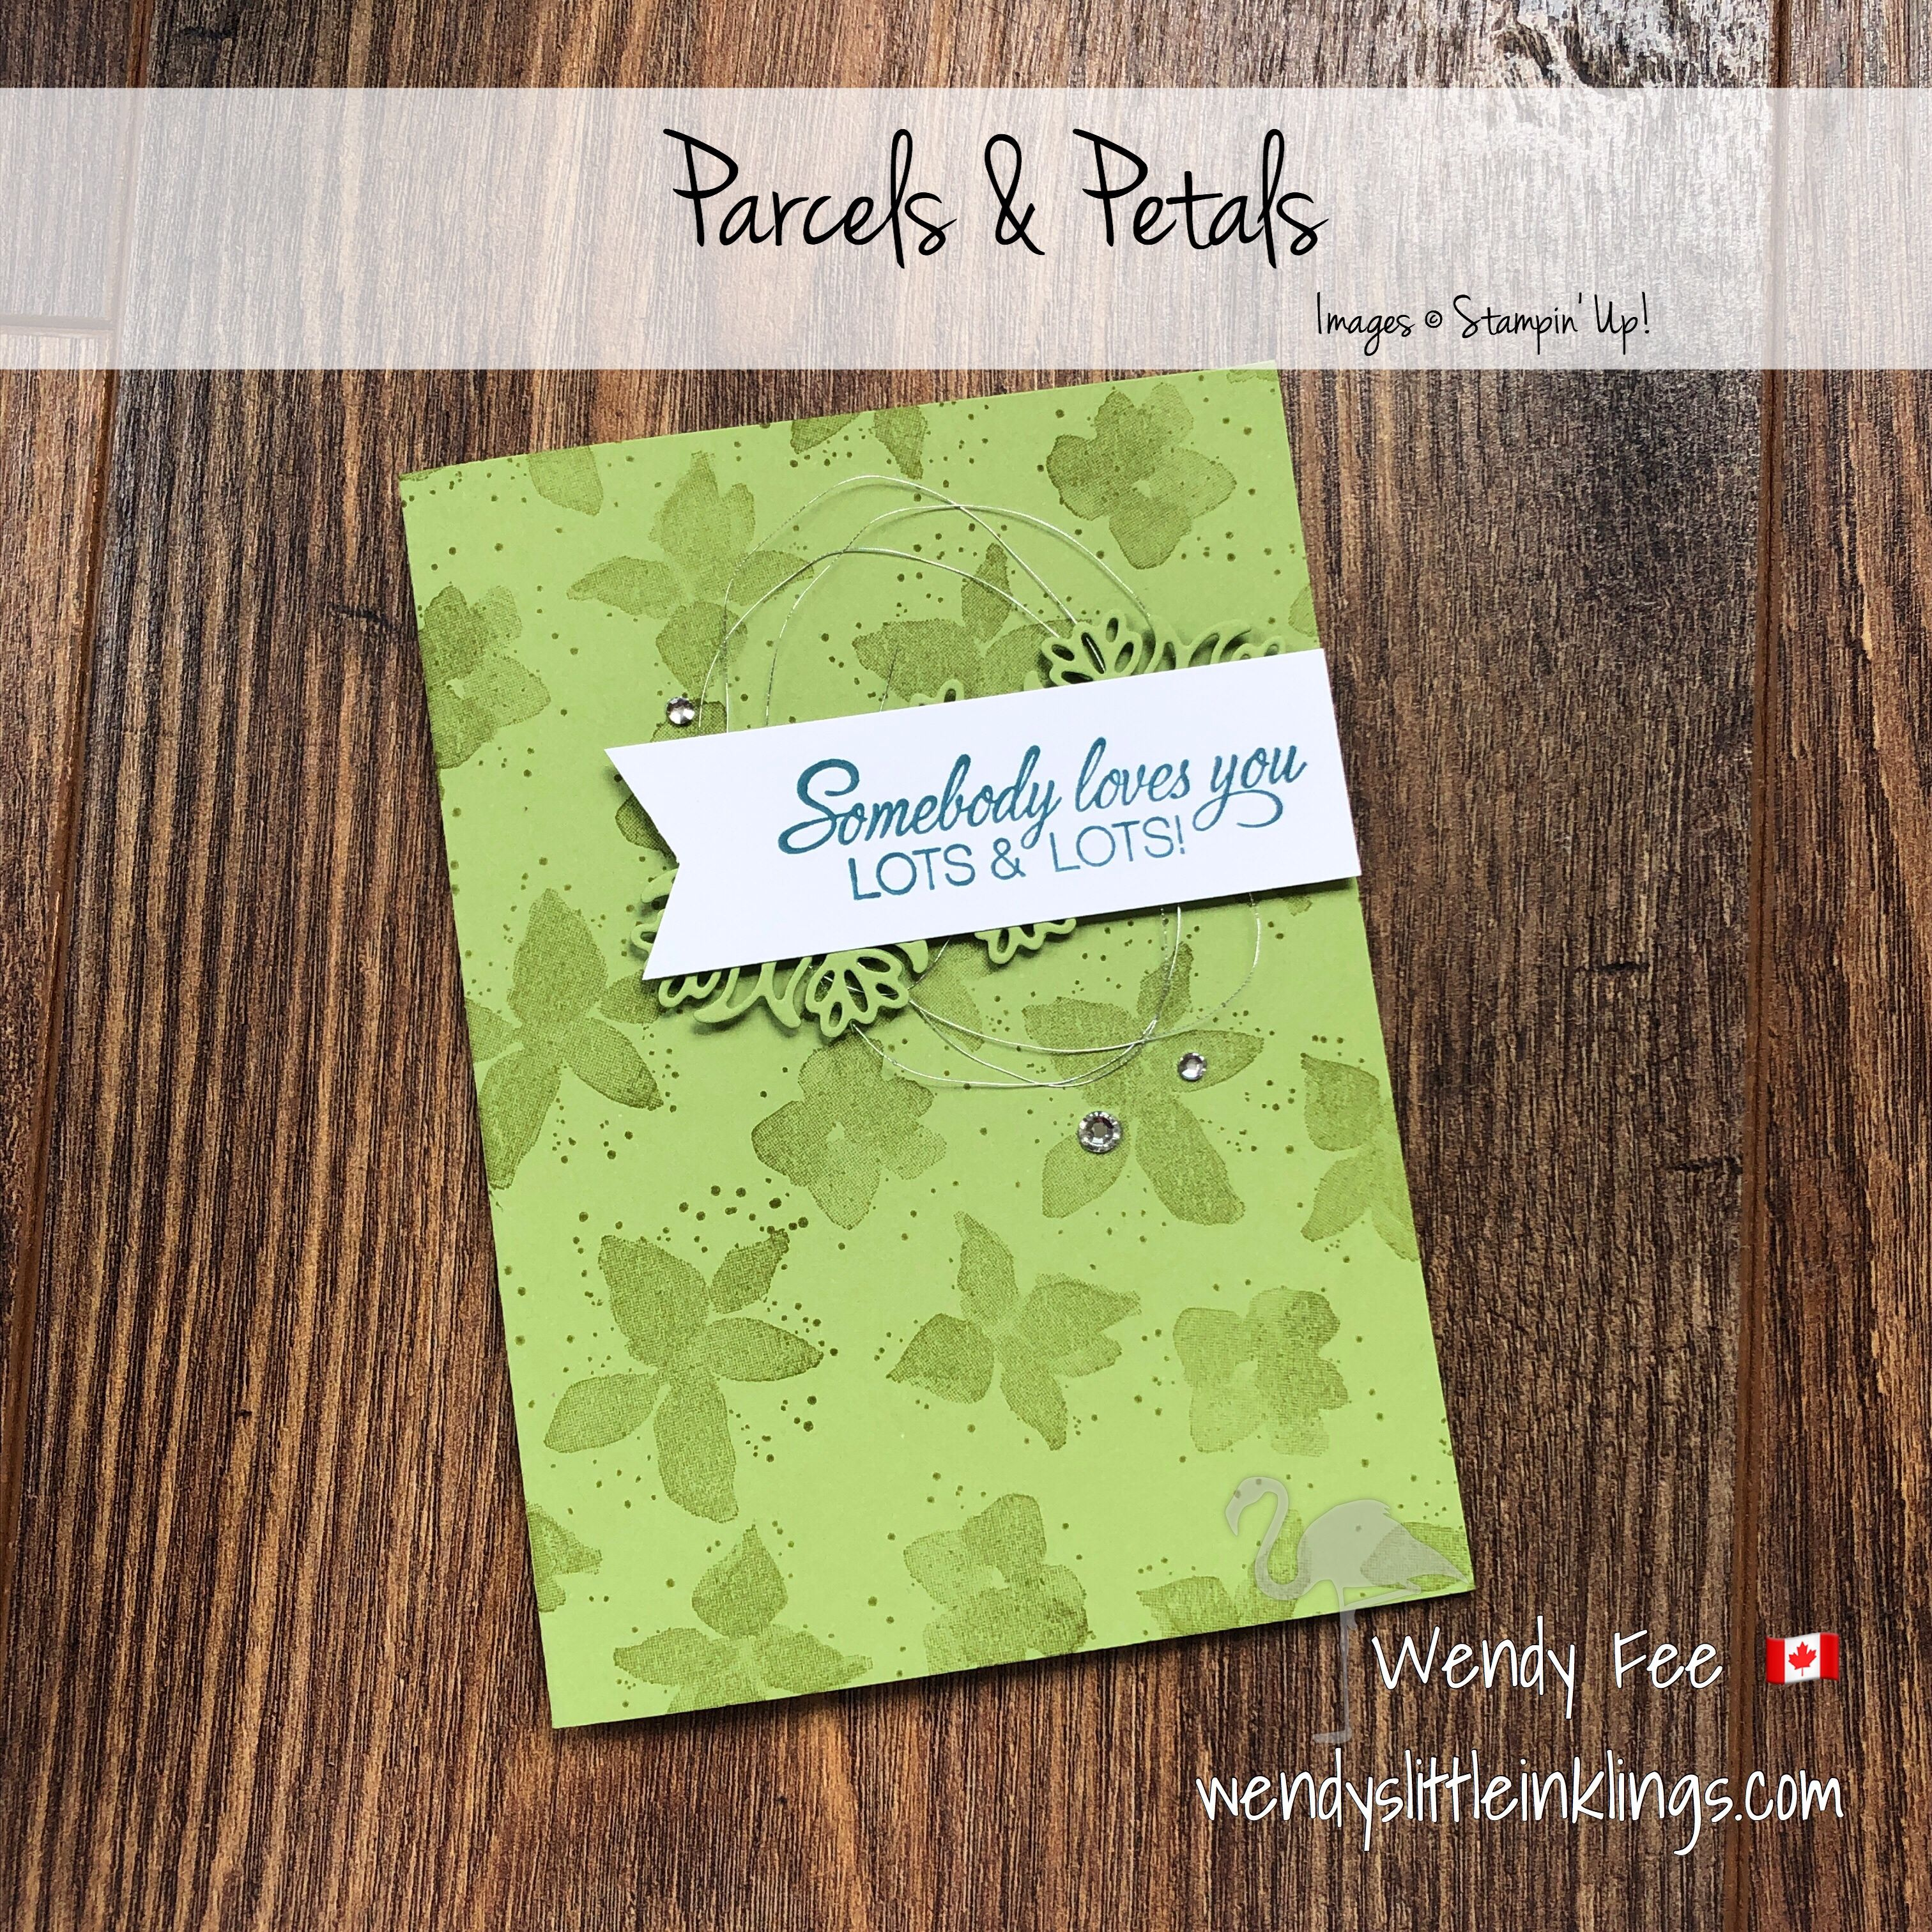 Parcels petals card copied from the catalogue wendys